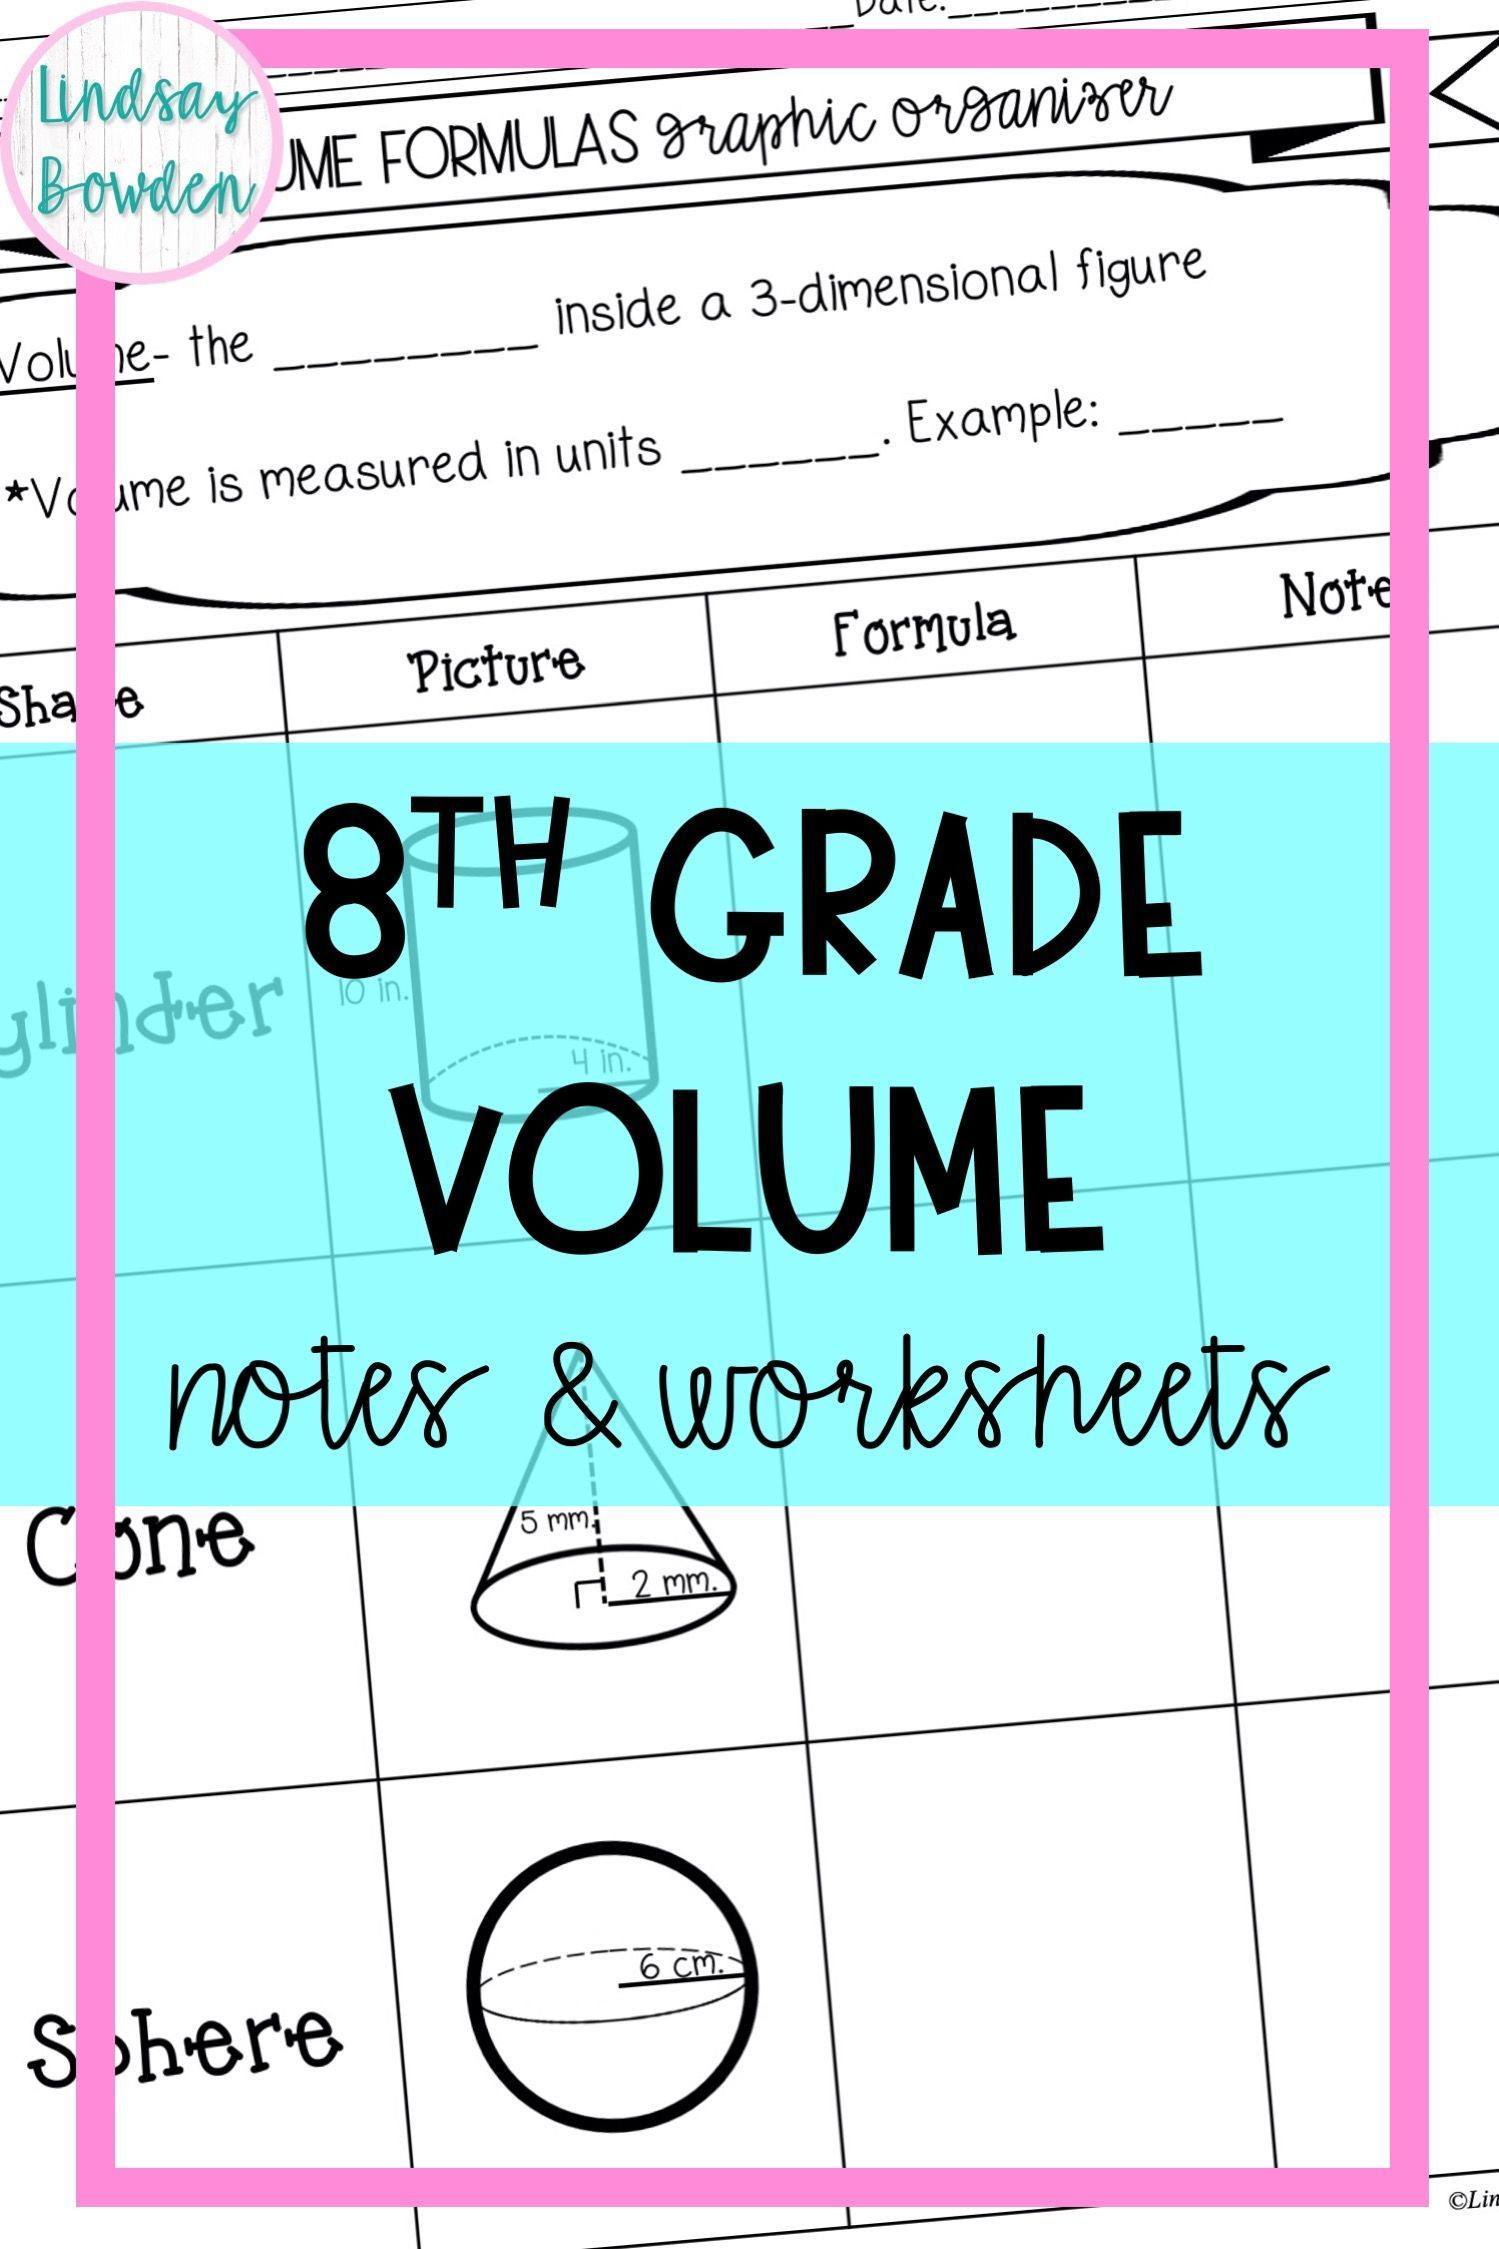 Volume Notes And Worksheets 8th Grade Maths Activities Middle School Middle School Math Resources Middle School Math [ 2249 x 1499 Pixel ]